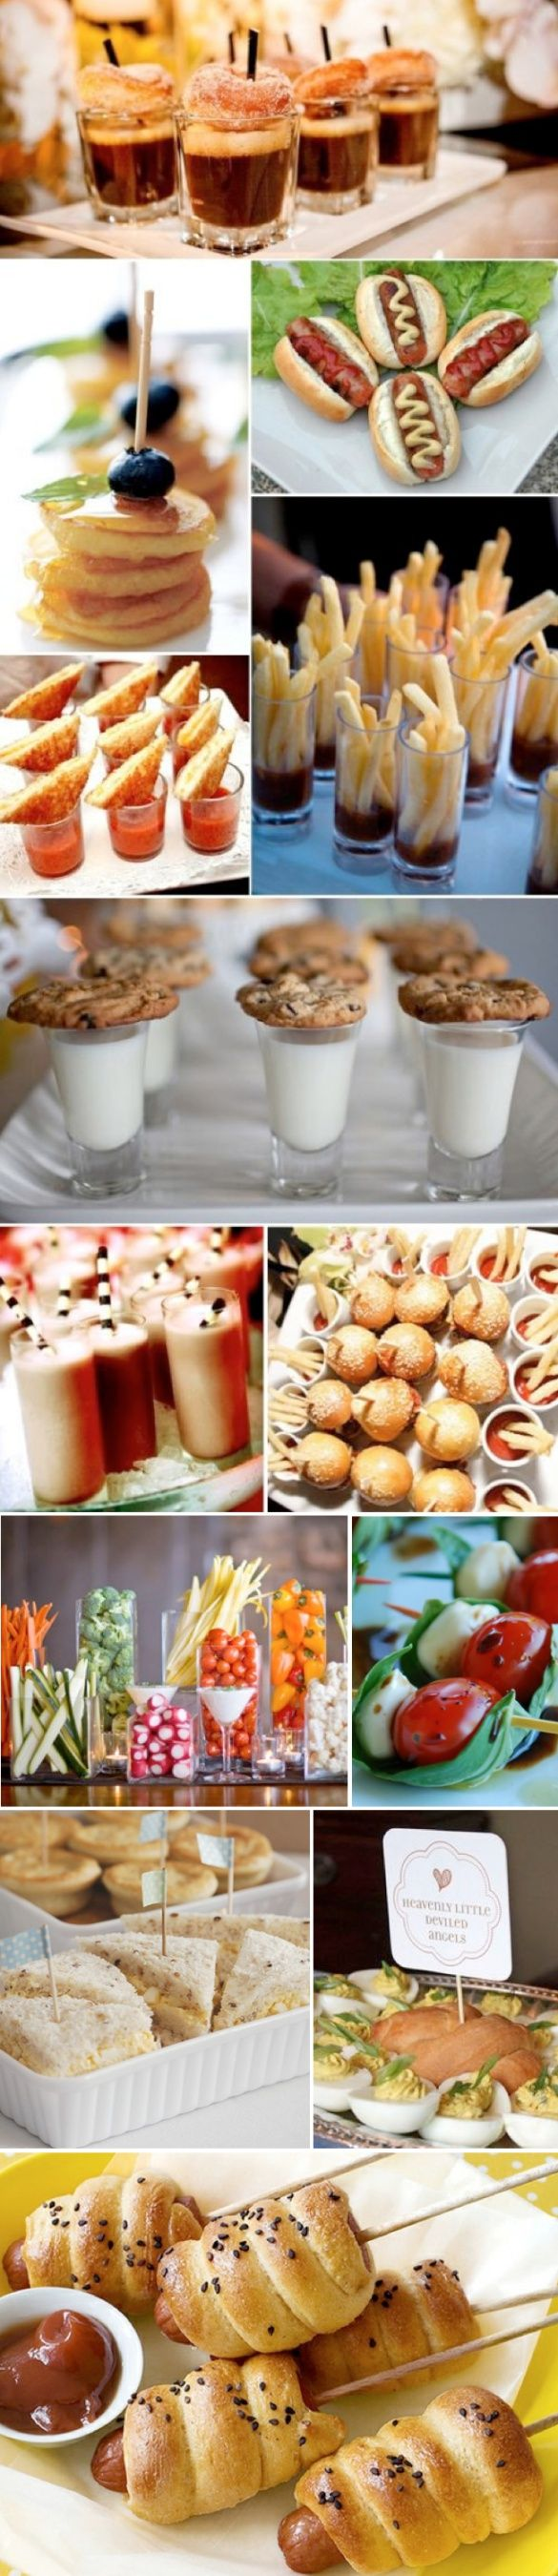 Fun finger foods: Buffet, Mini Foods, Food Ideas, Fingers Food, Minis Food, Finger Foods, Parties Ideas, Cocktails Parties, Parties Food